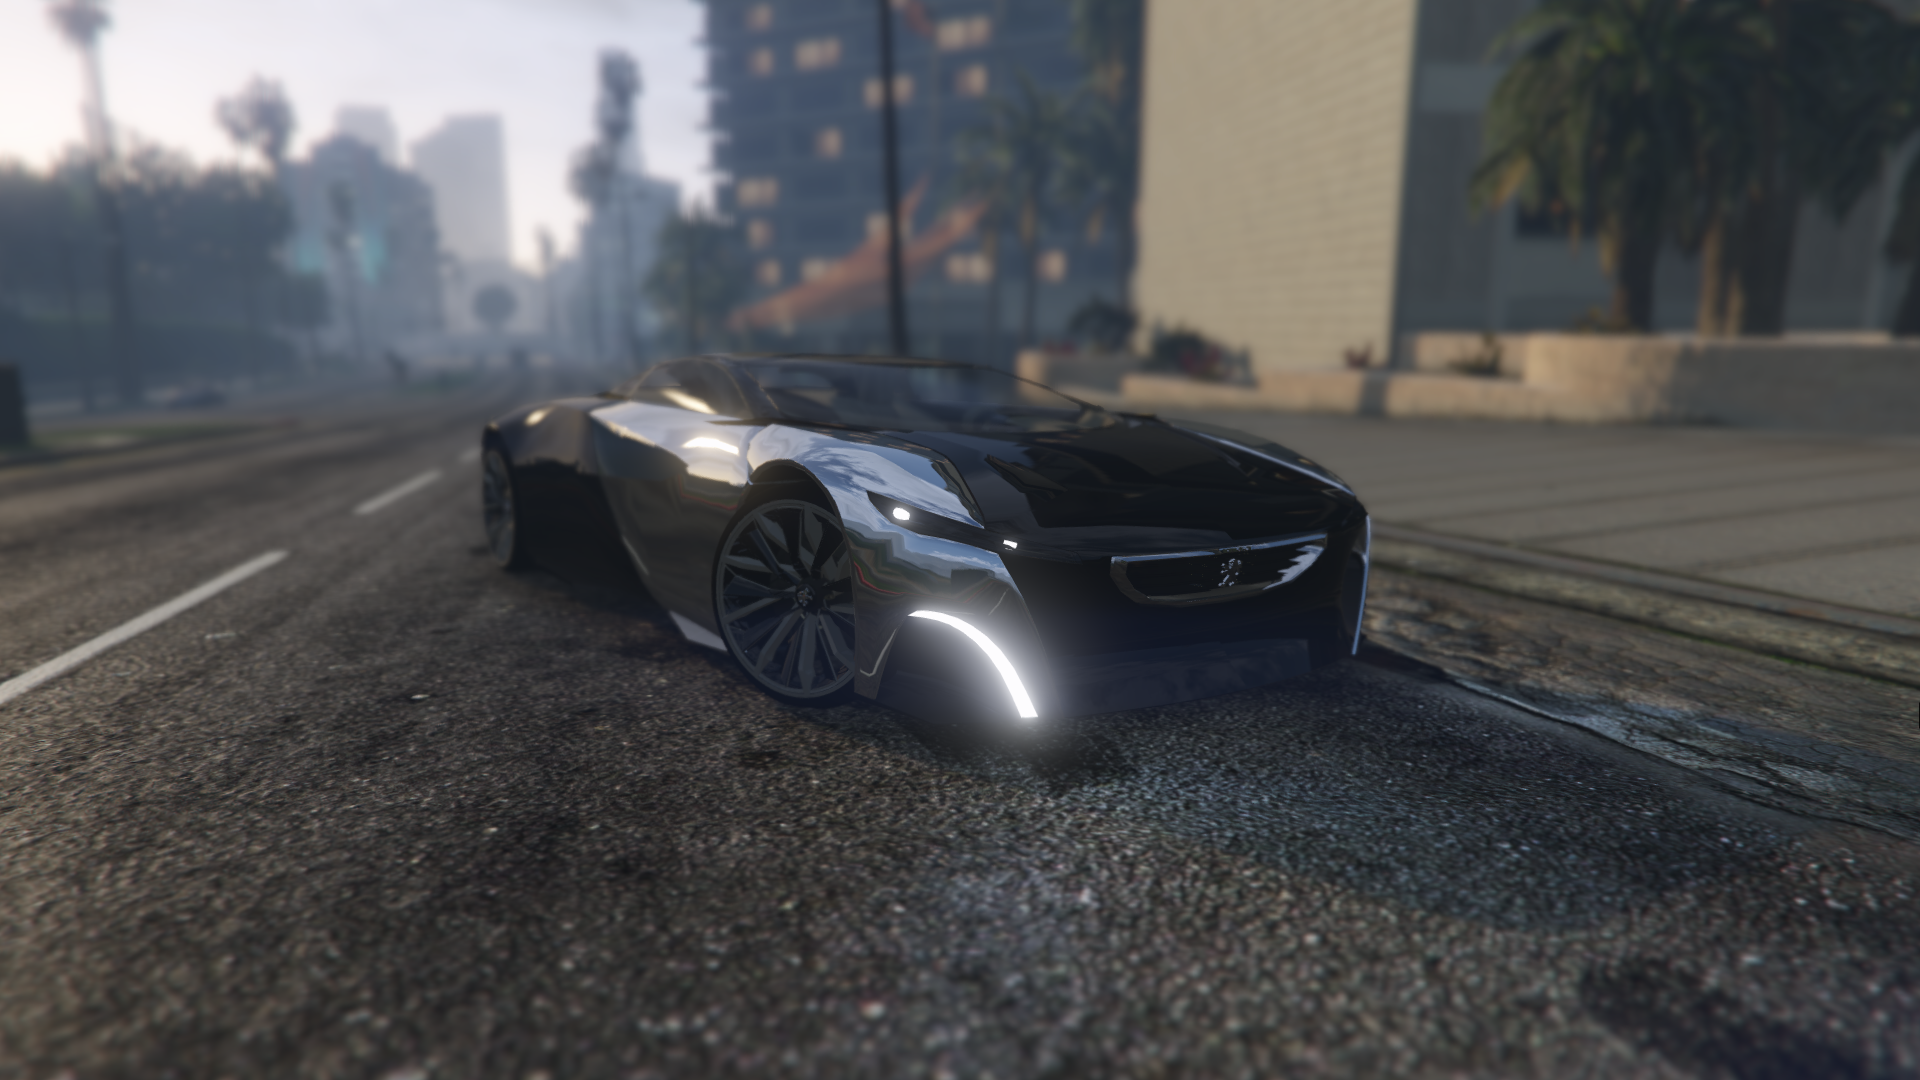 Peugeot Onyx Add On Replace Auto Spoiler Gta5 Mods Com HD Wallpapers Download free images and photos [musssic.tk]